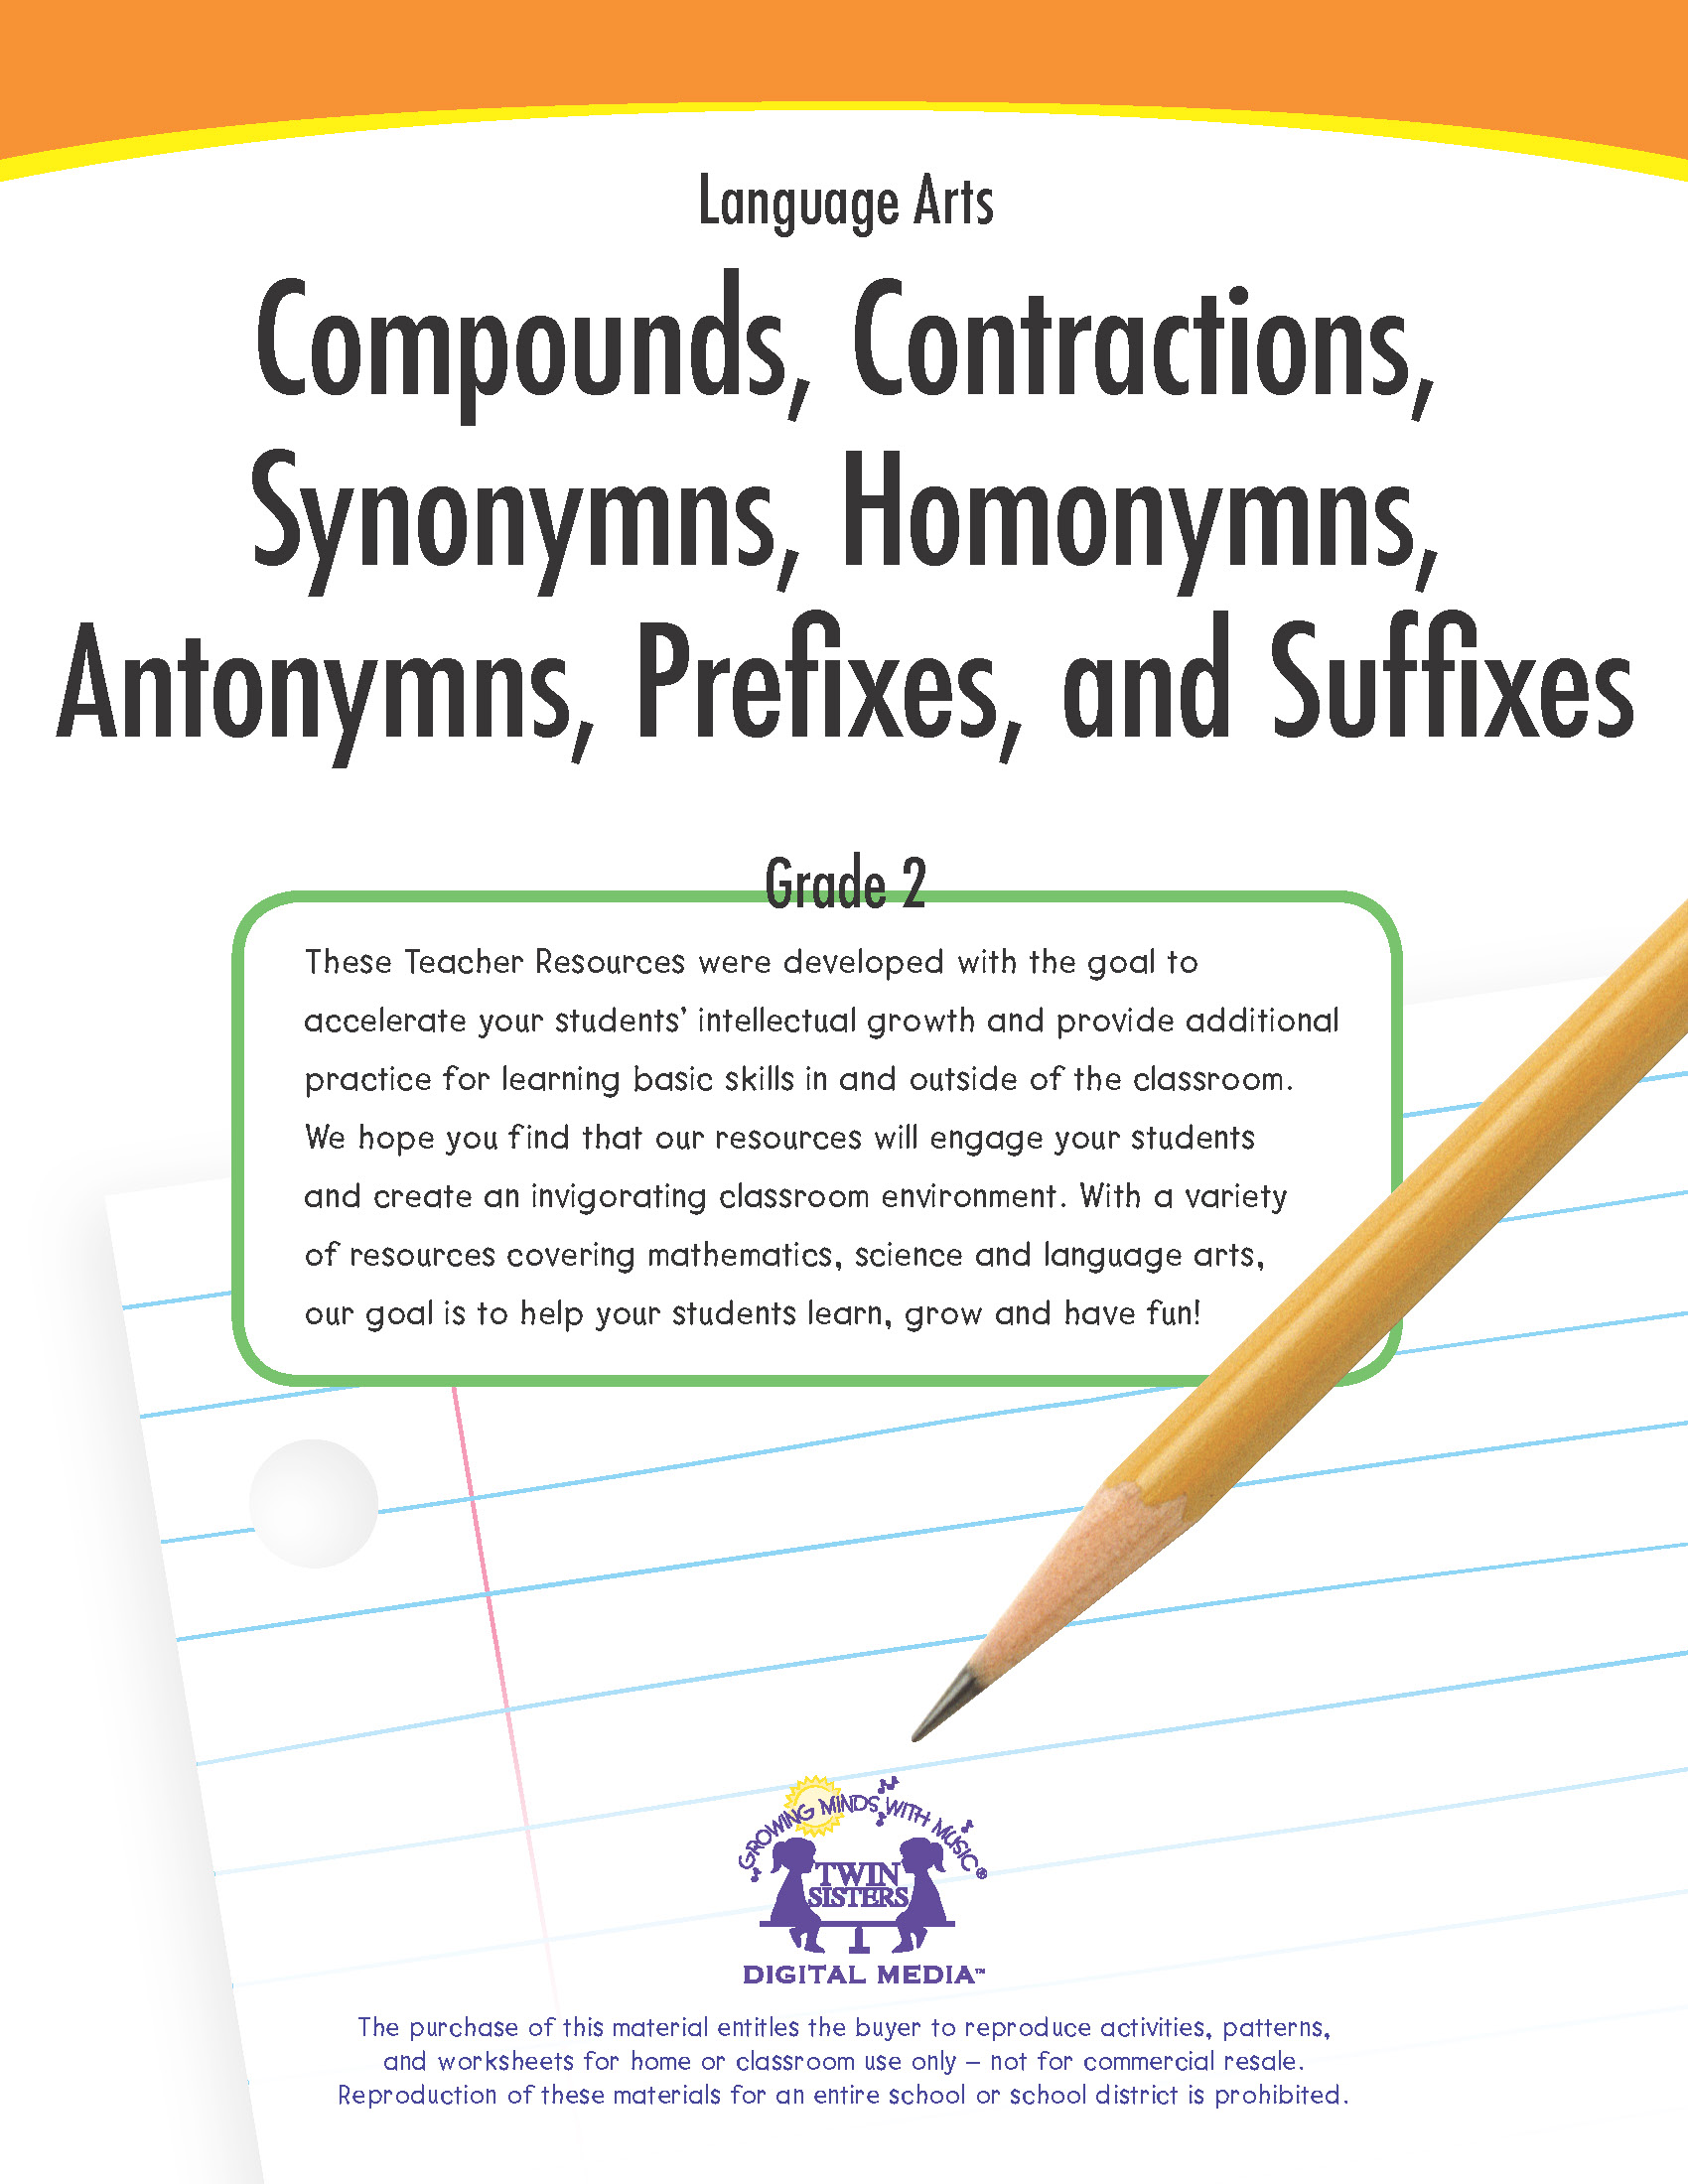 Language Arts Grade 2 Compounds Contractions Synonyms